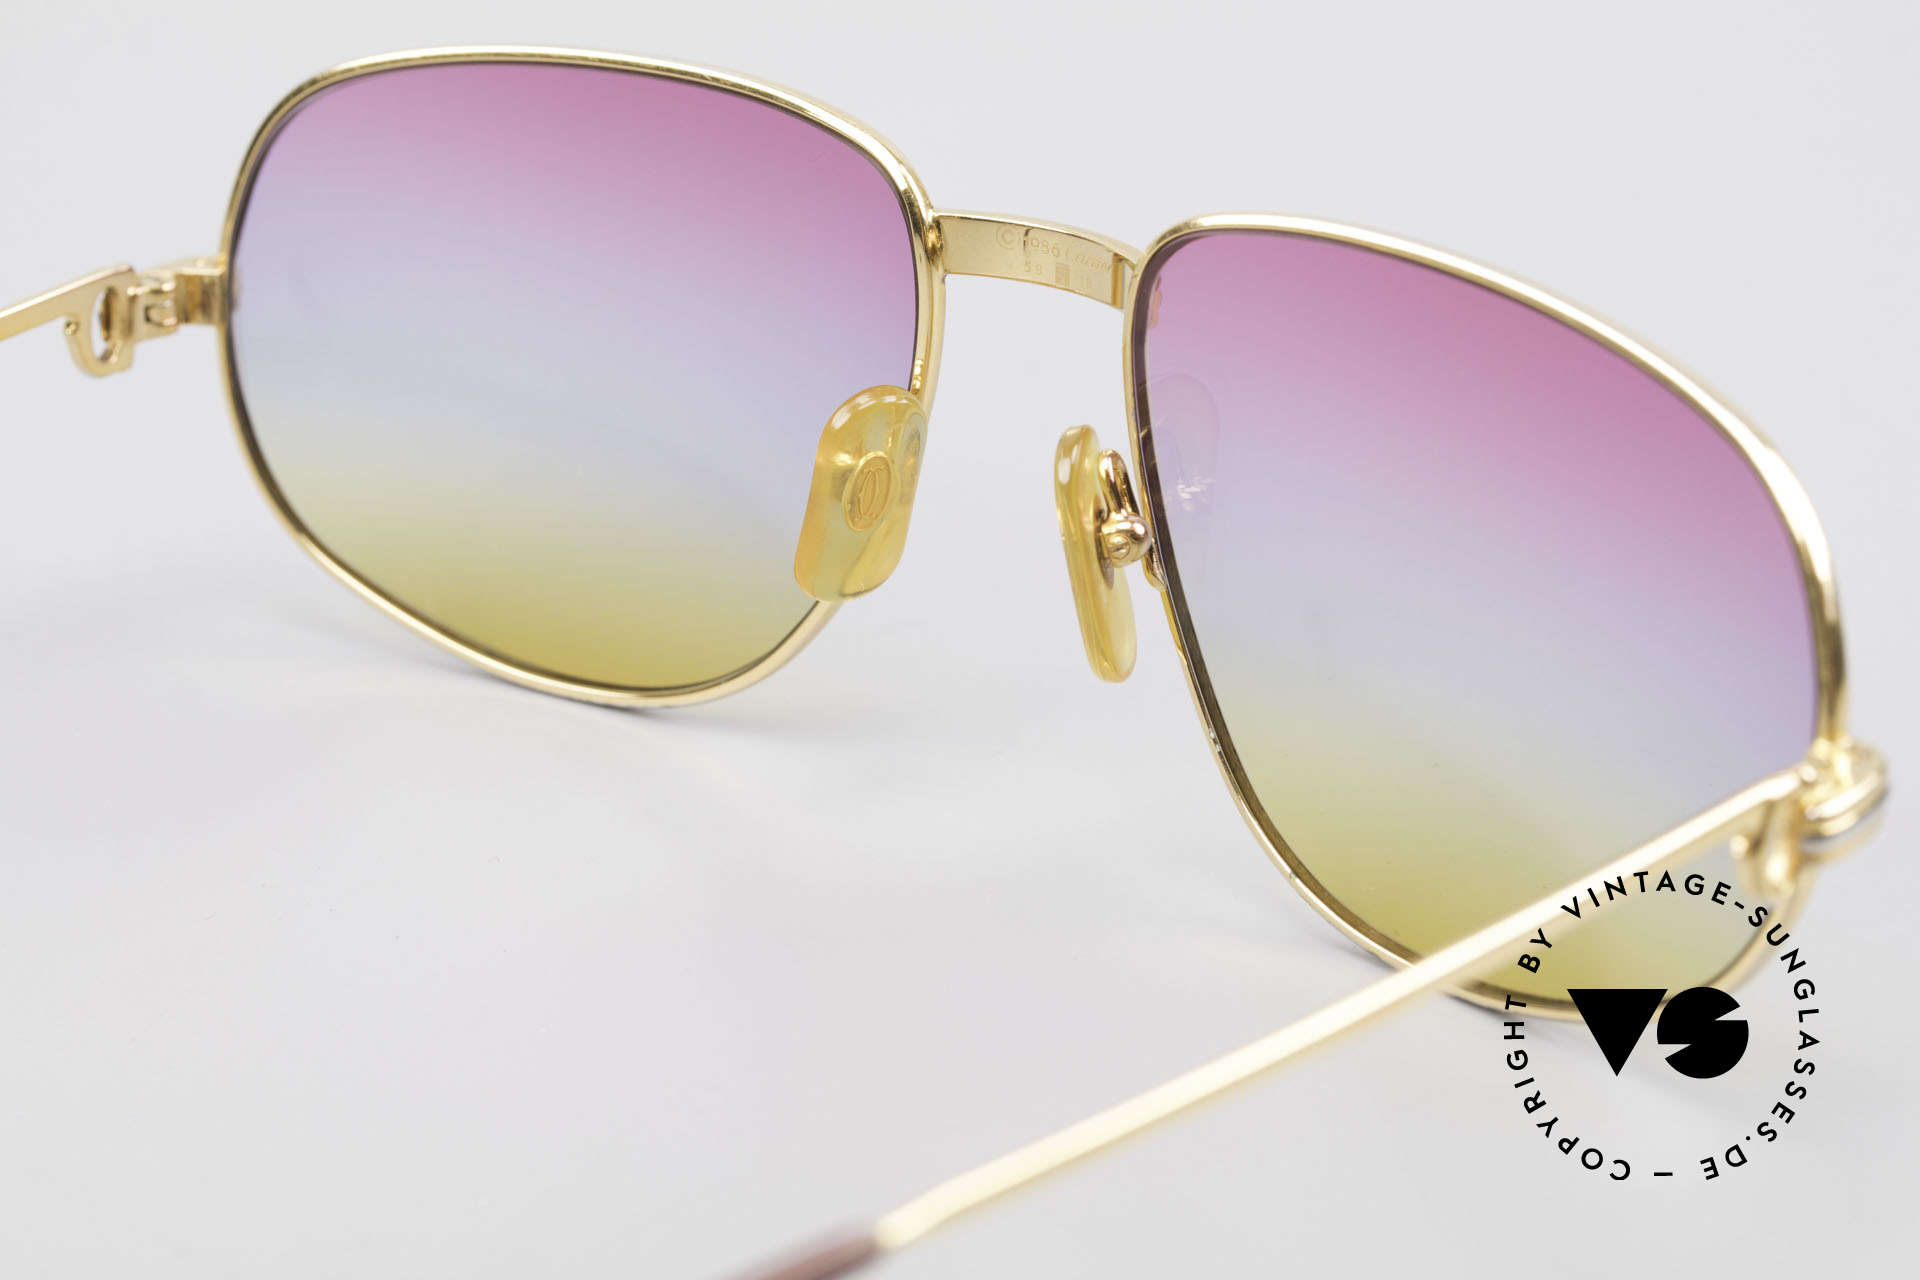 Cartier Romance LC - L Luxury Designer Sunglasses, NO RETRO eyewear; a rare 30 years old vintage ORIGINAL!, Made for Men and Women